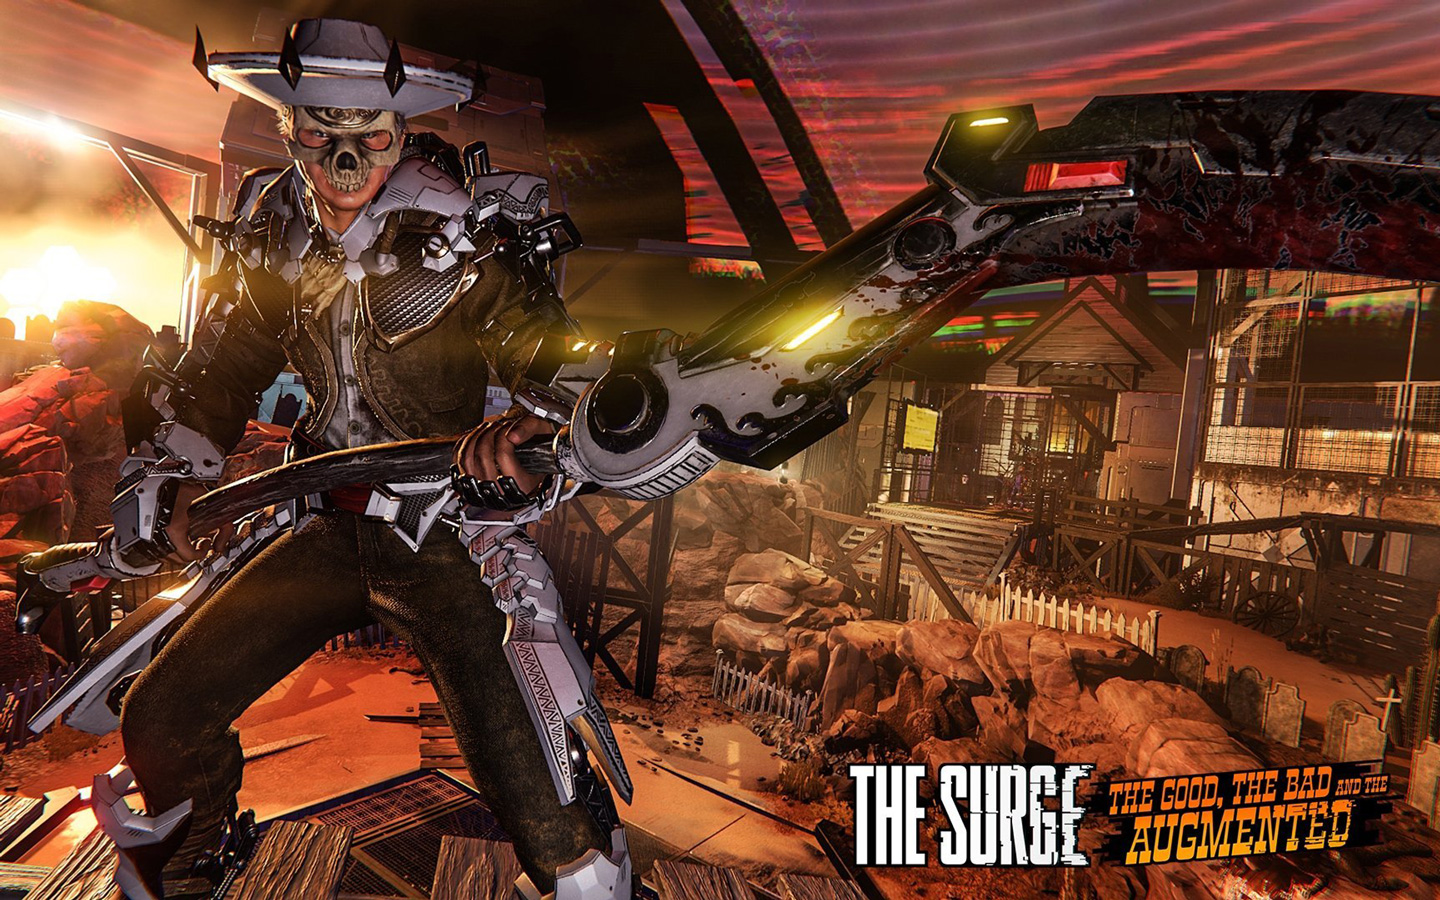 Free The Surge Wallpaper in 1440x900